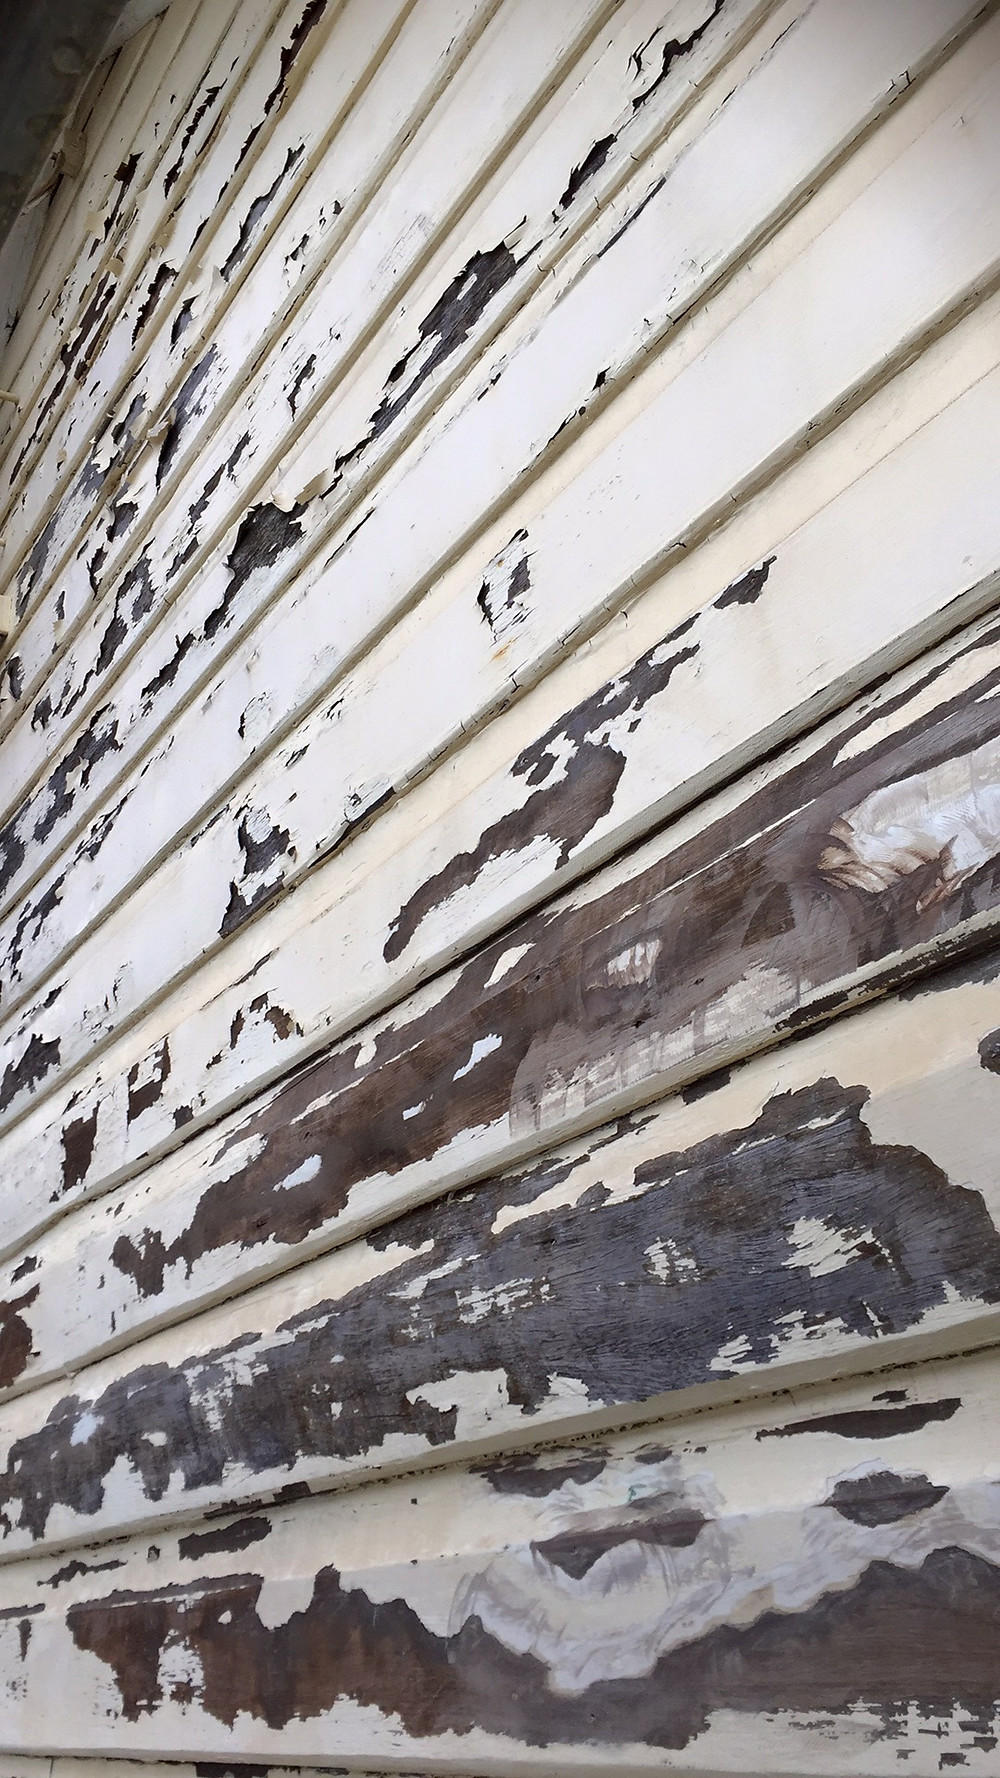 cracked peeling painting websites,master painters,painting services,painter newcastle,newcastle painting